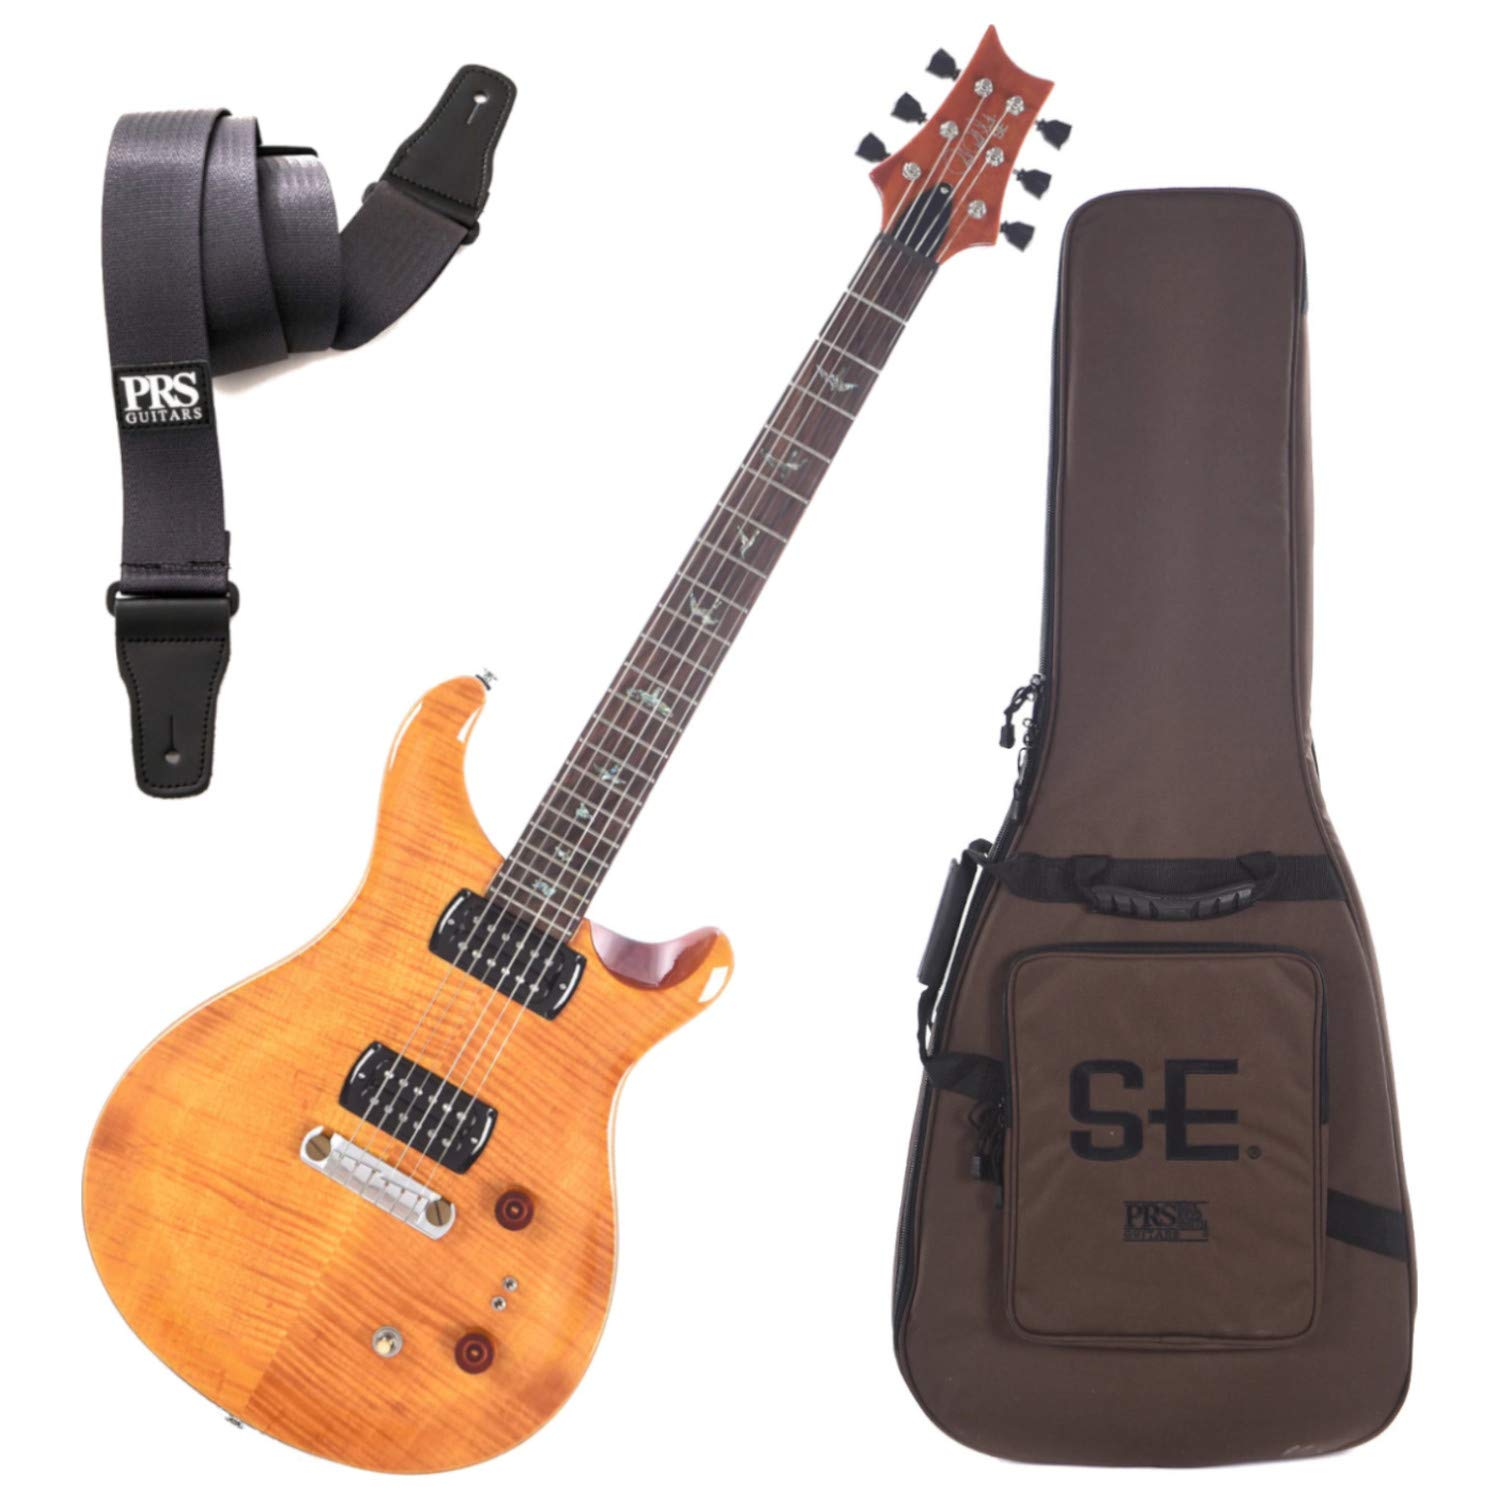 Cheap PRS Paul Reed Smith 103495 SE Paul s Guitar Electric Guitar (Amber) w/Gig B Black Friday & Cyber Monday 2019